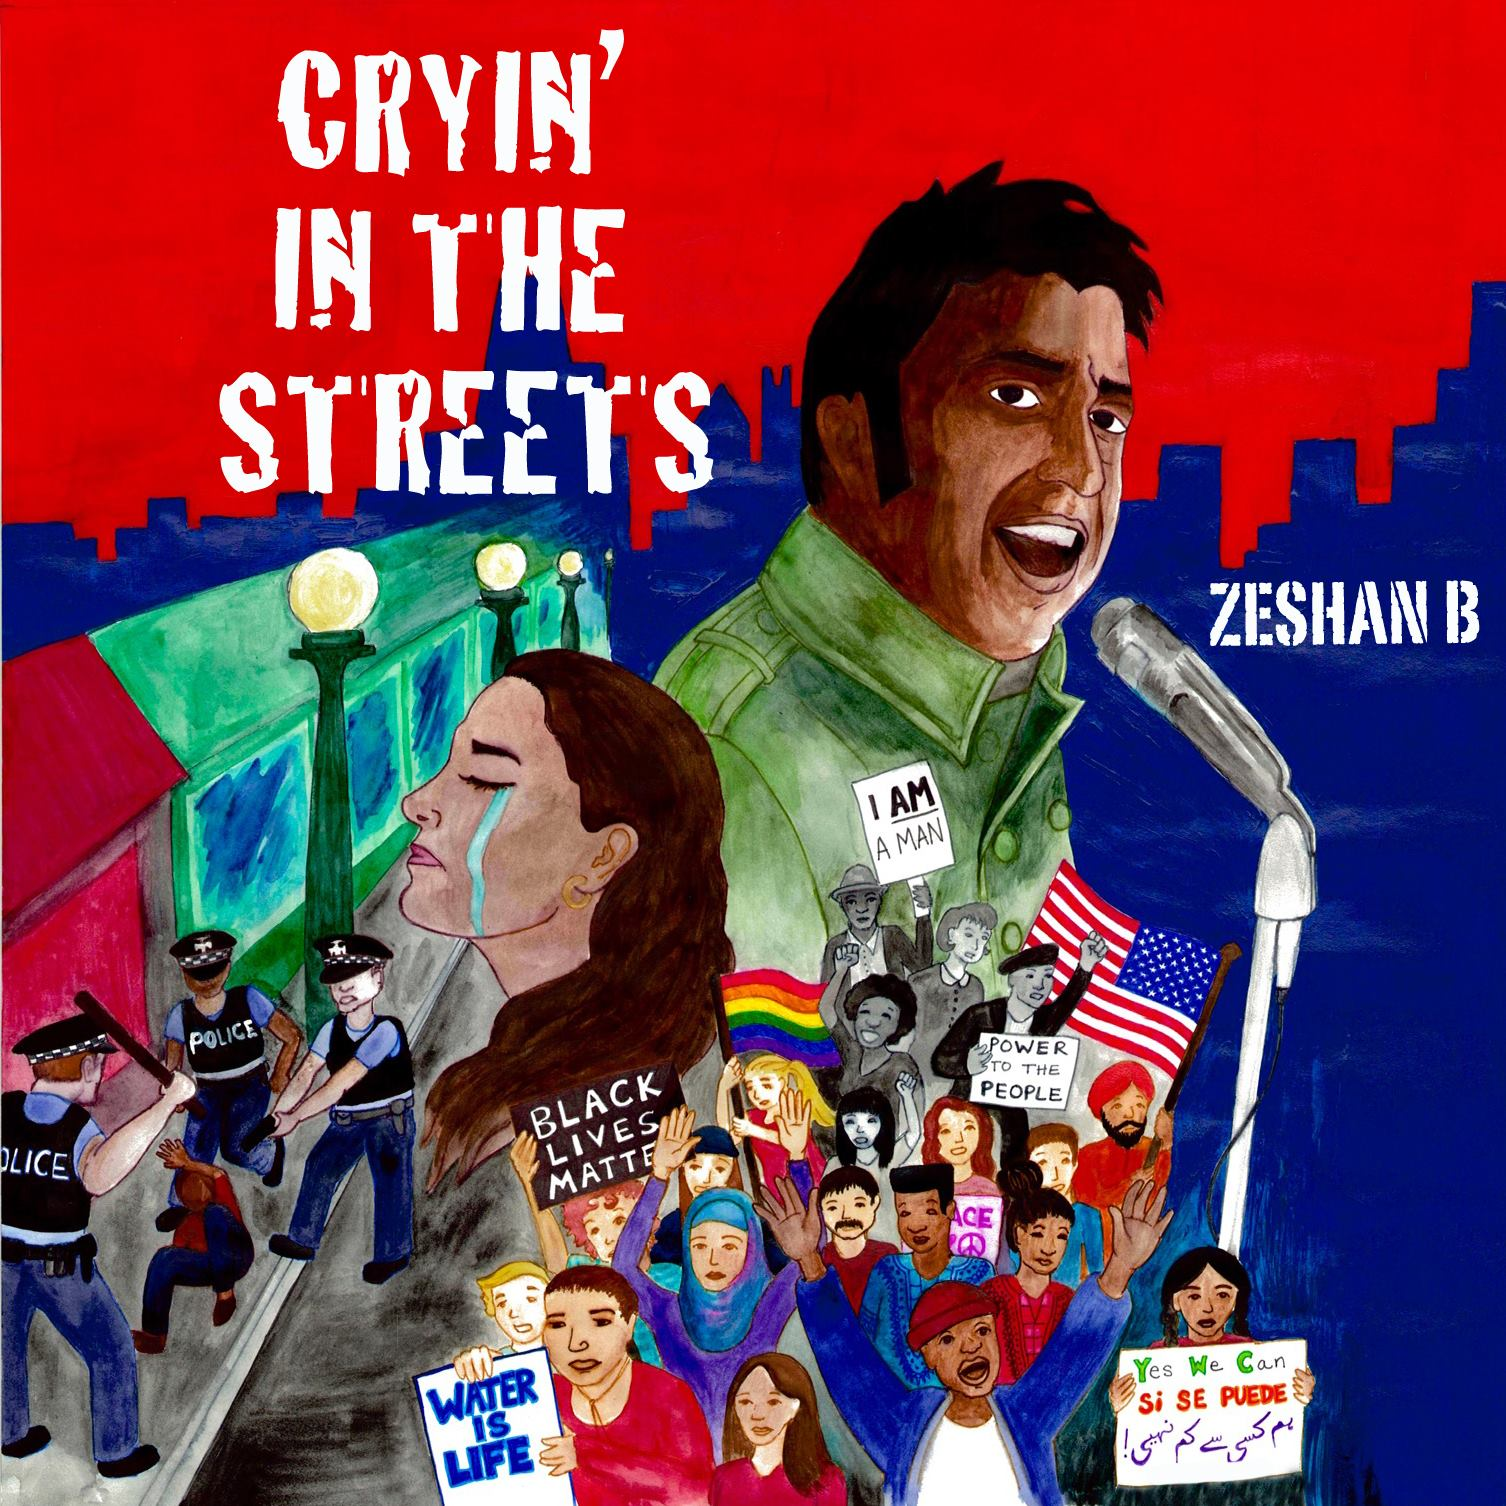 Cryin' In the Streets